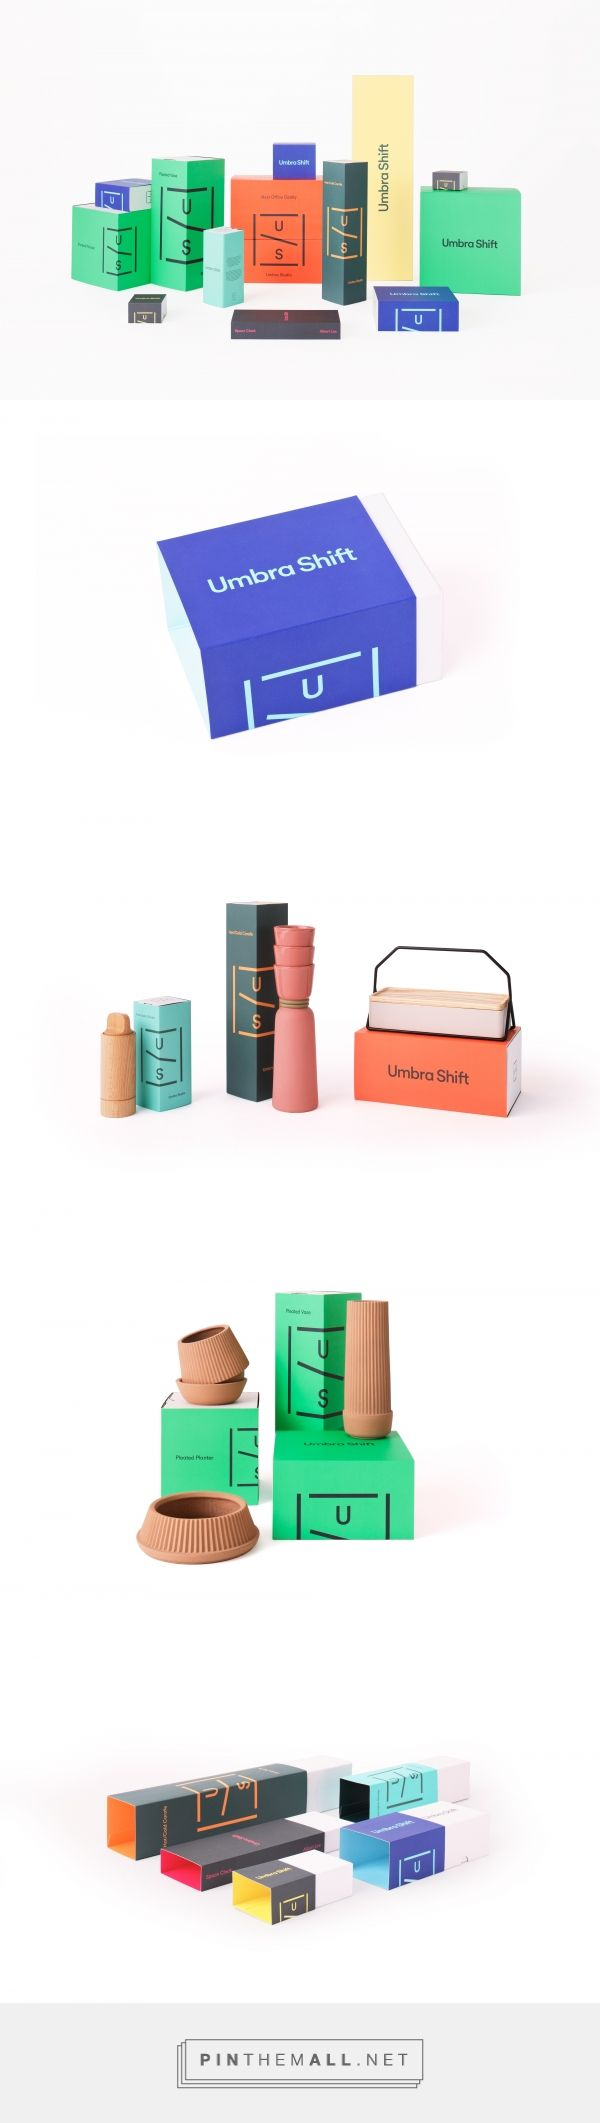 Umbra Shift is an extension of Umbra that focuses on contemporary influences in…